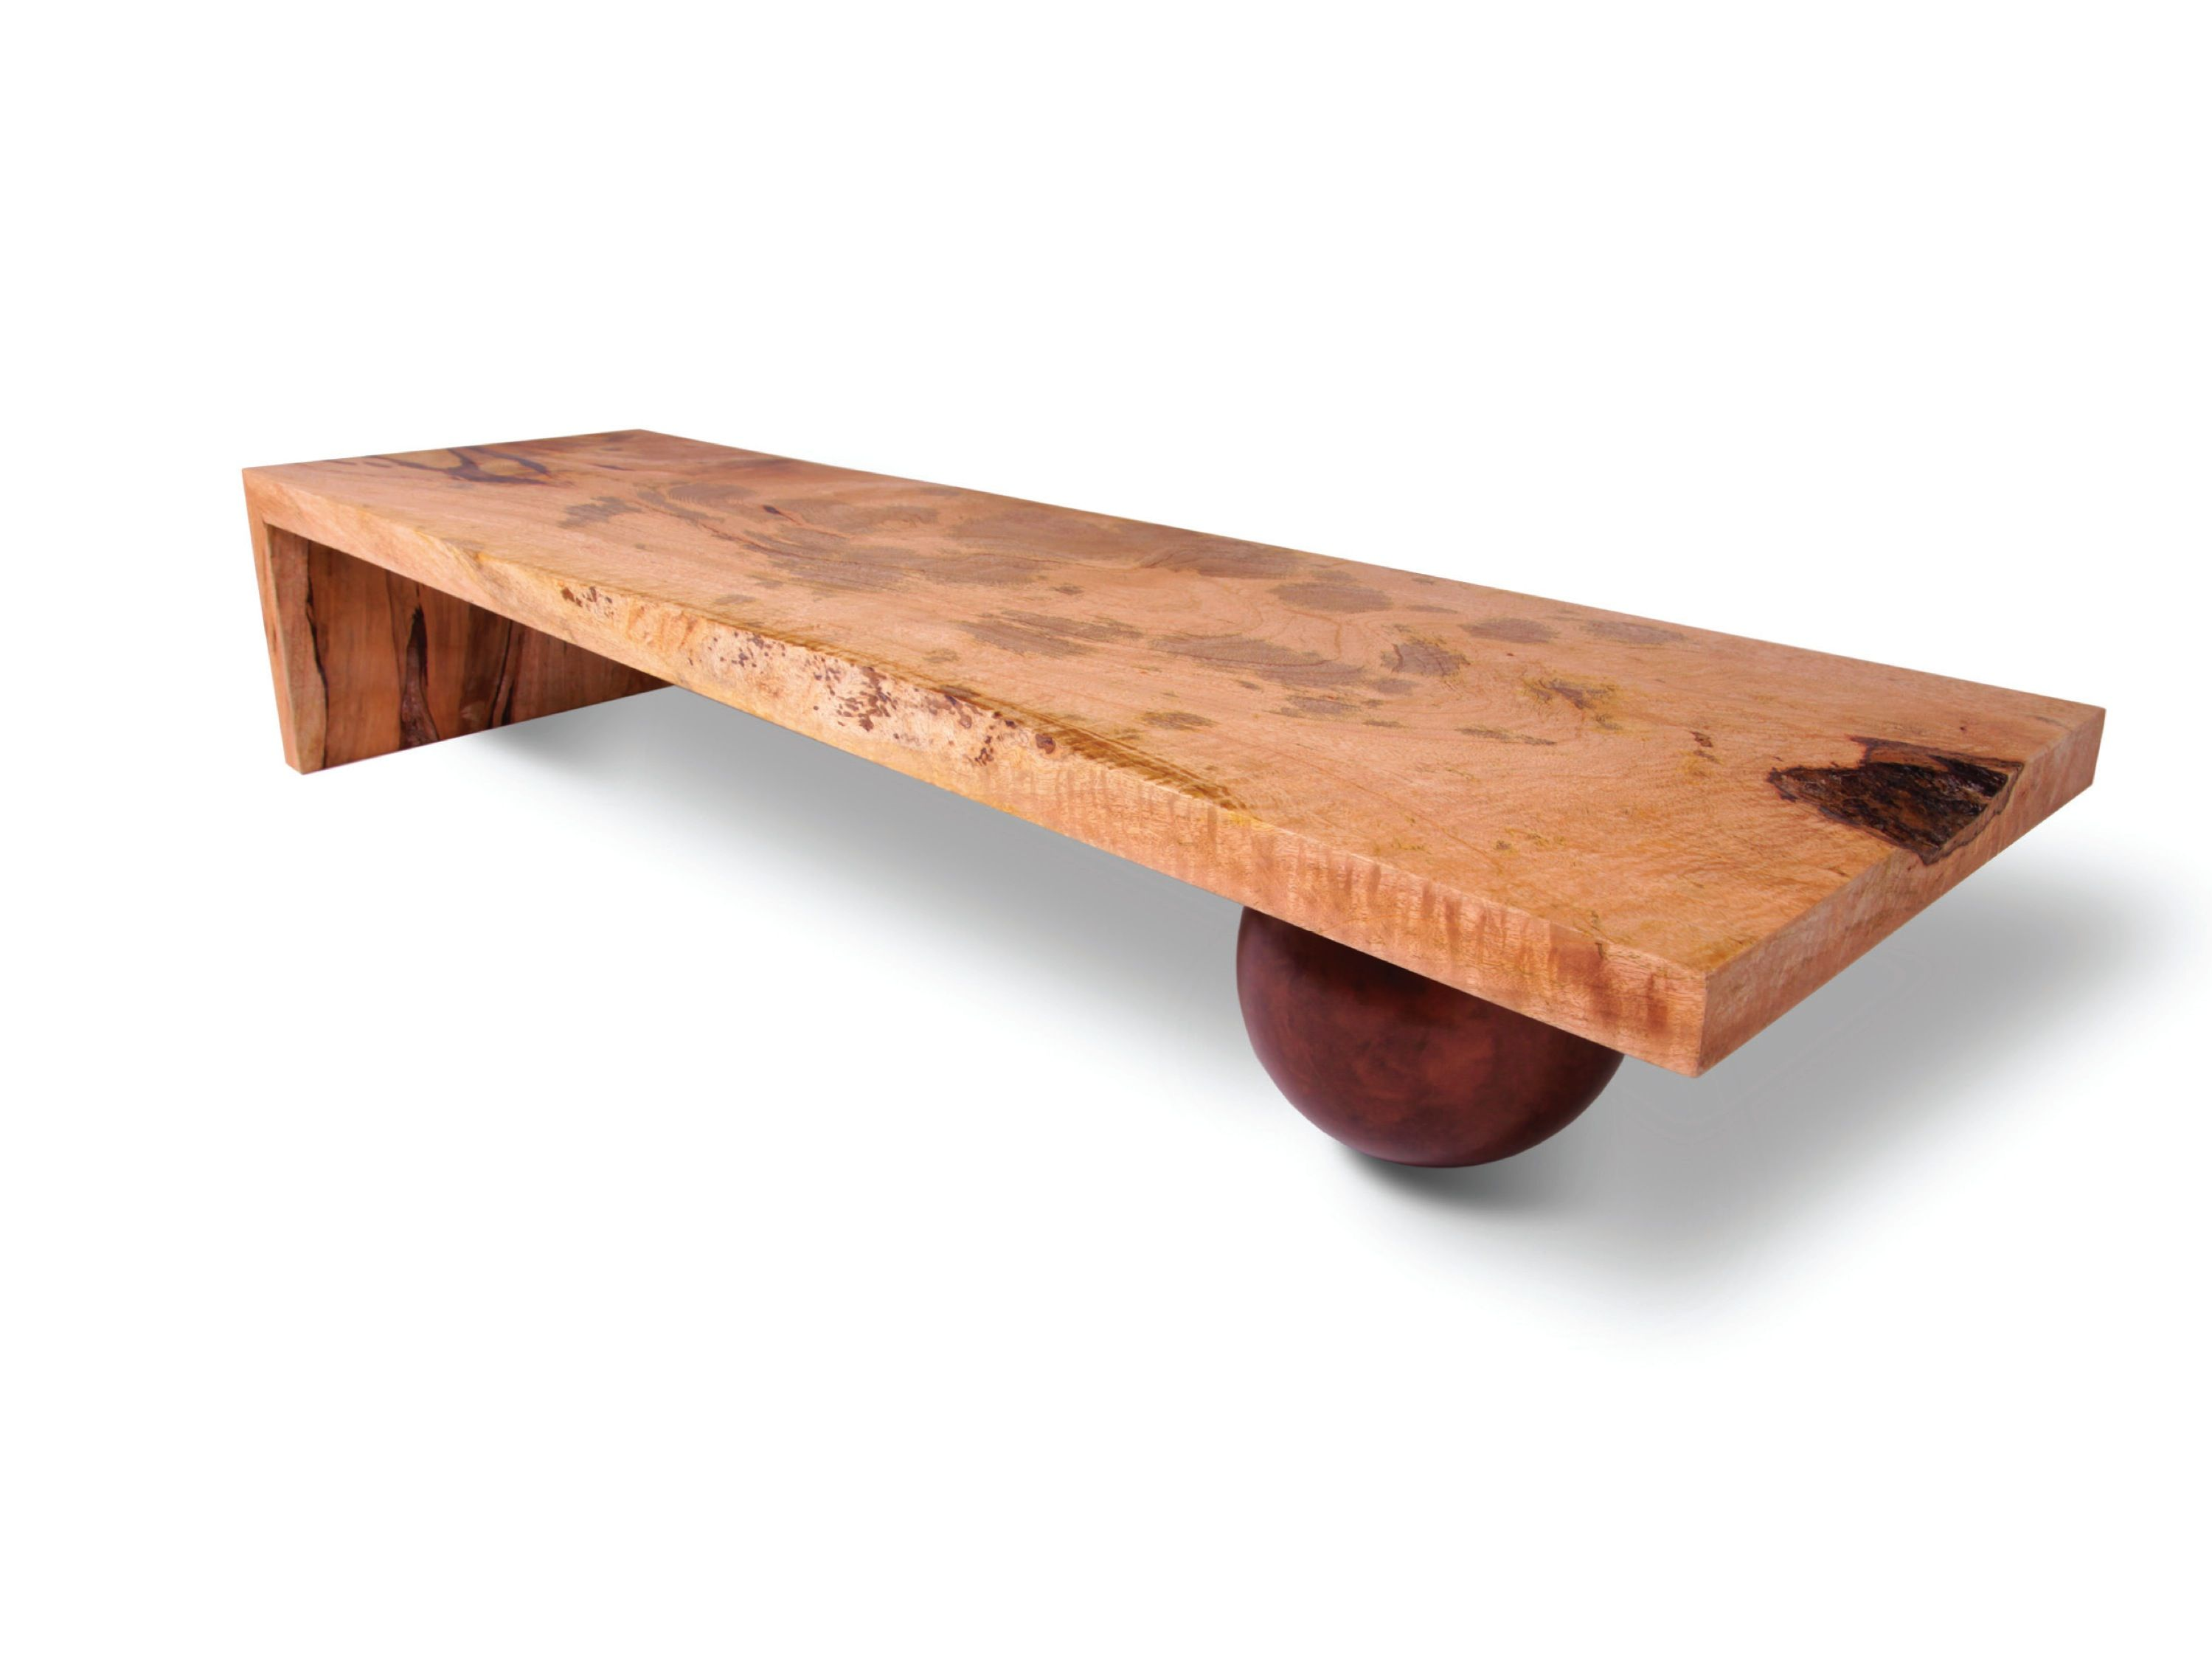 This Modern Coffee Table Is Made With A Single Slab Of Reclaimed